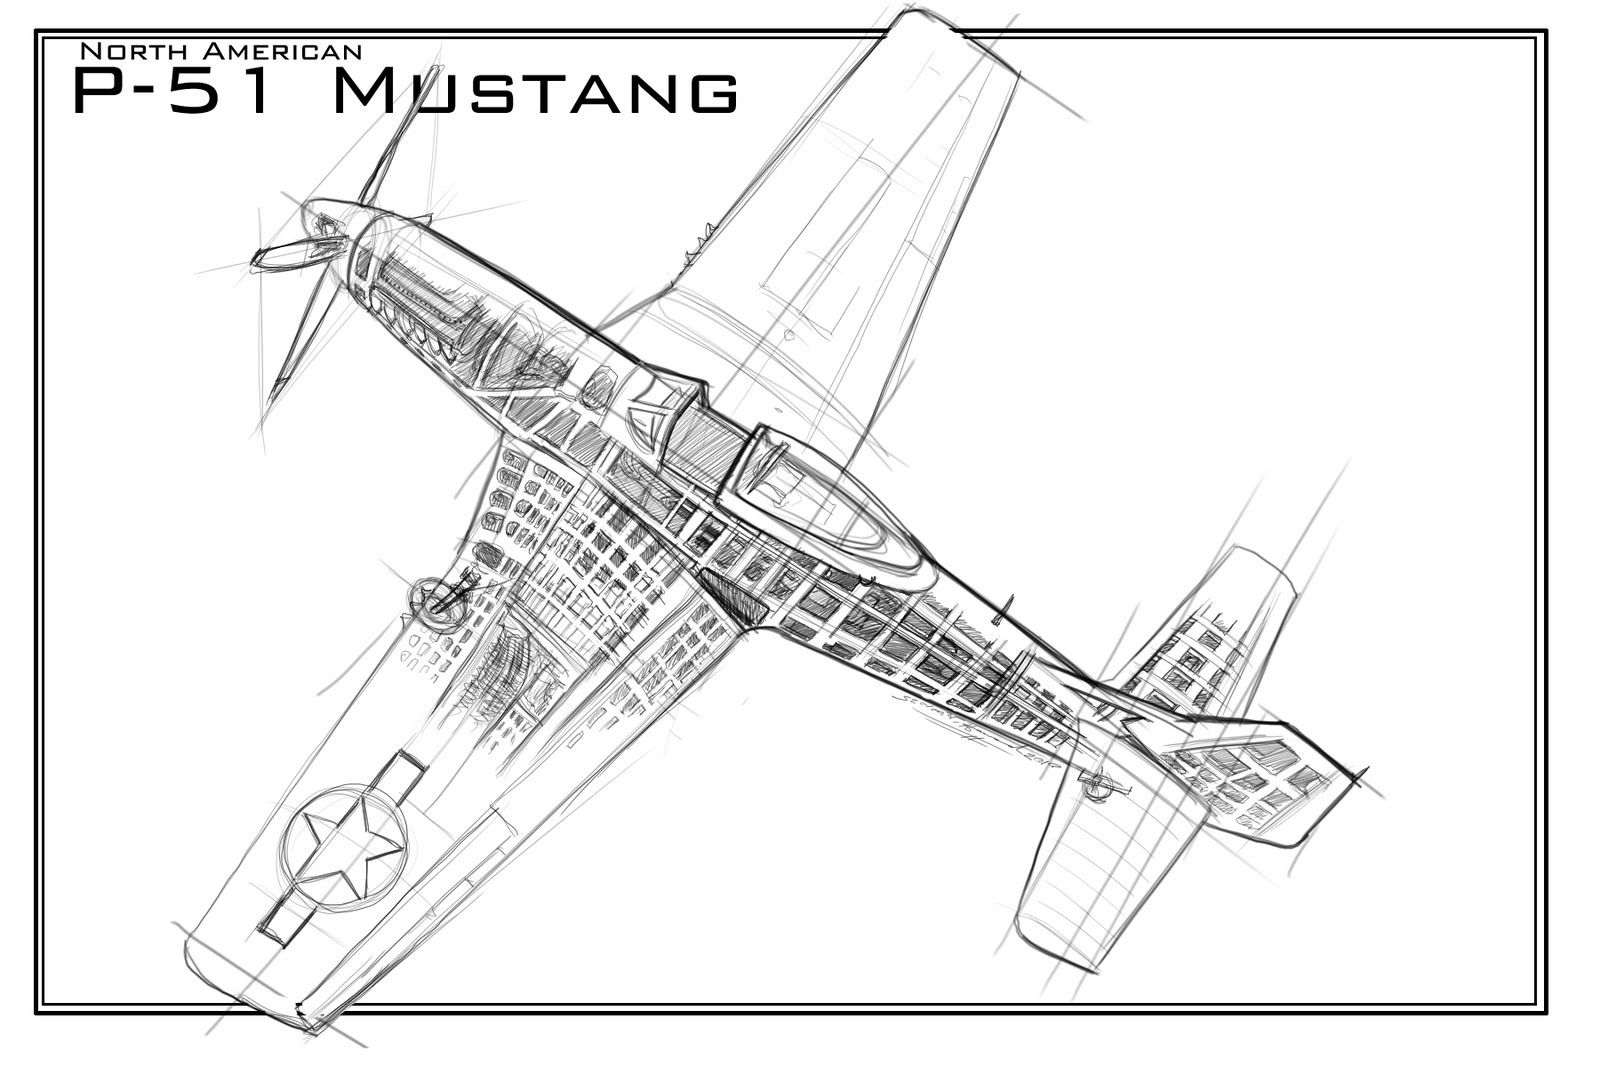 A Cross-Section of Steven W. Howard Art: P-51 Mustang